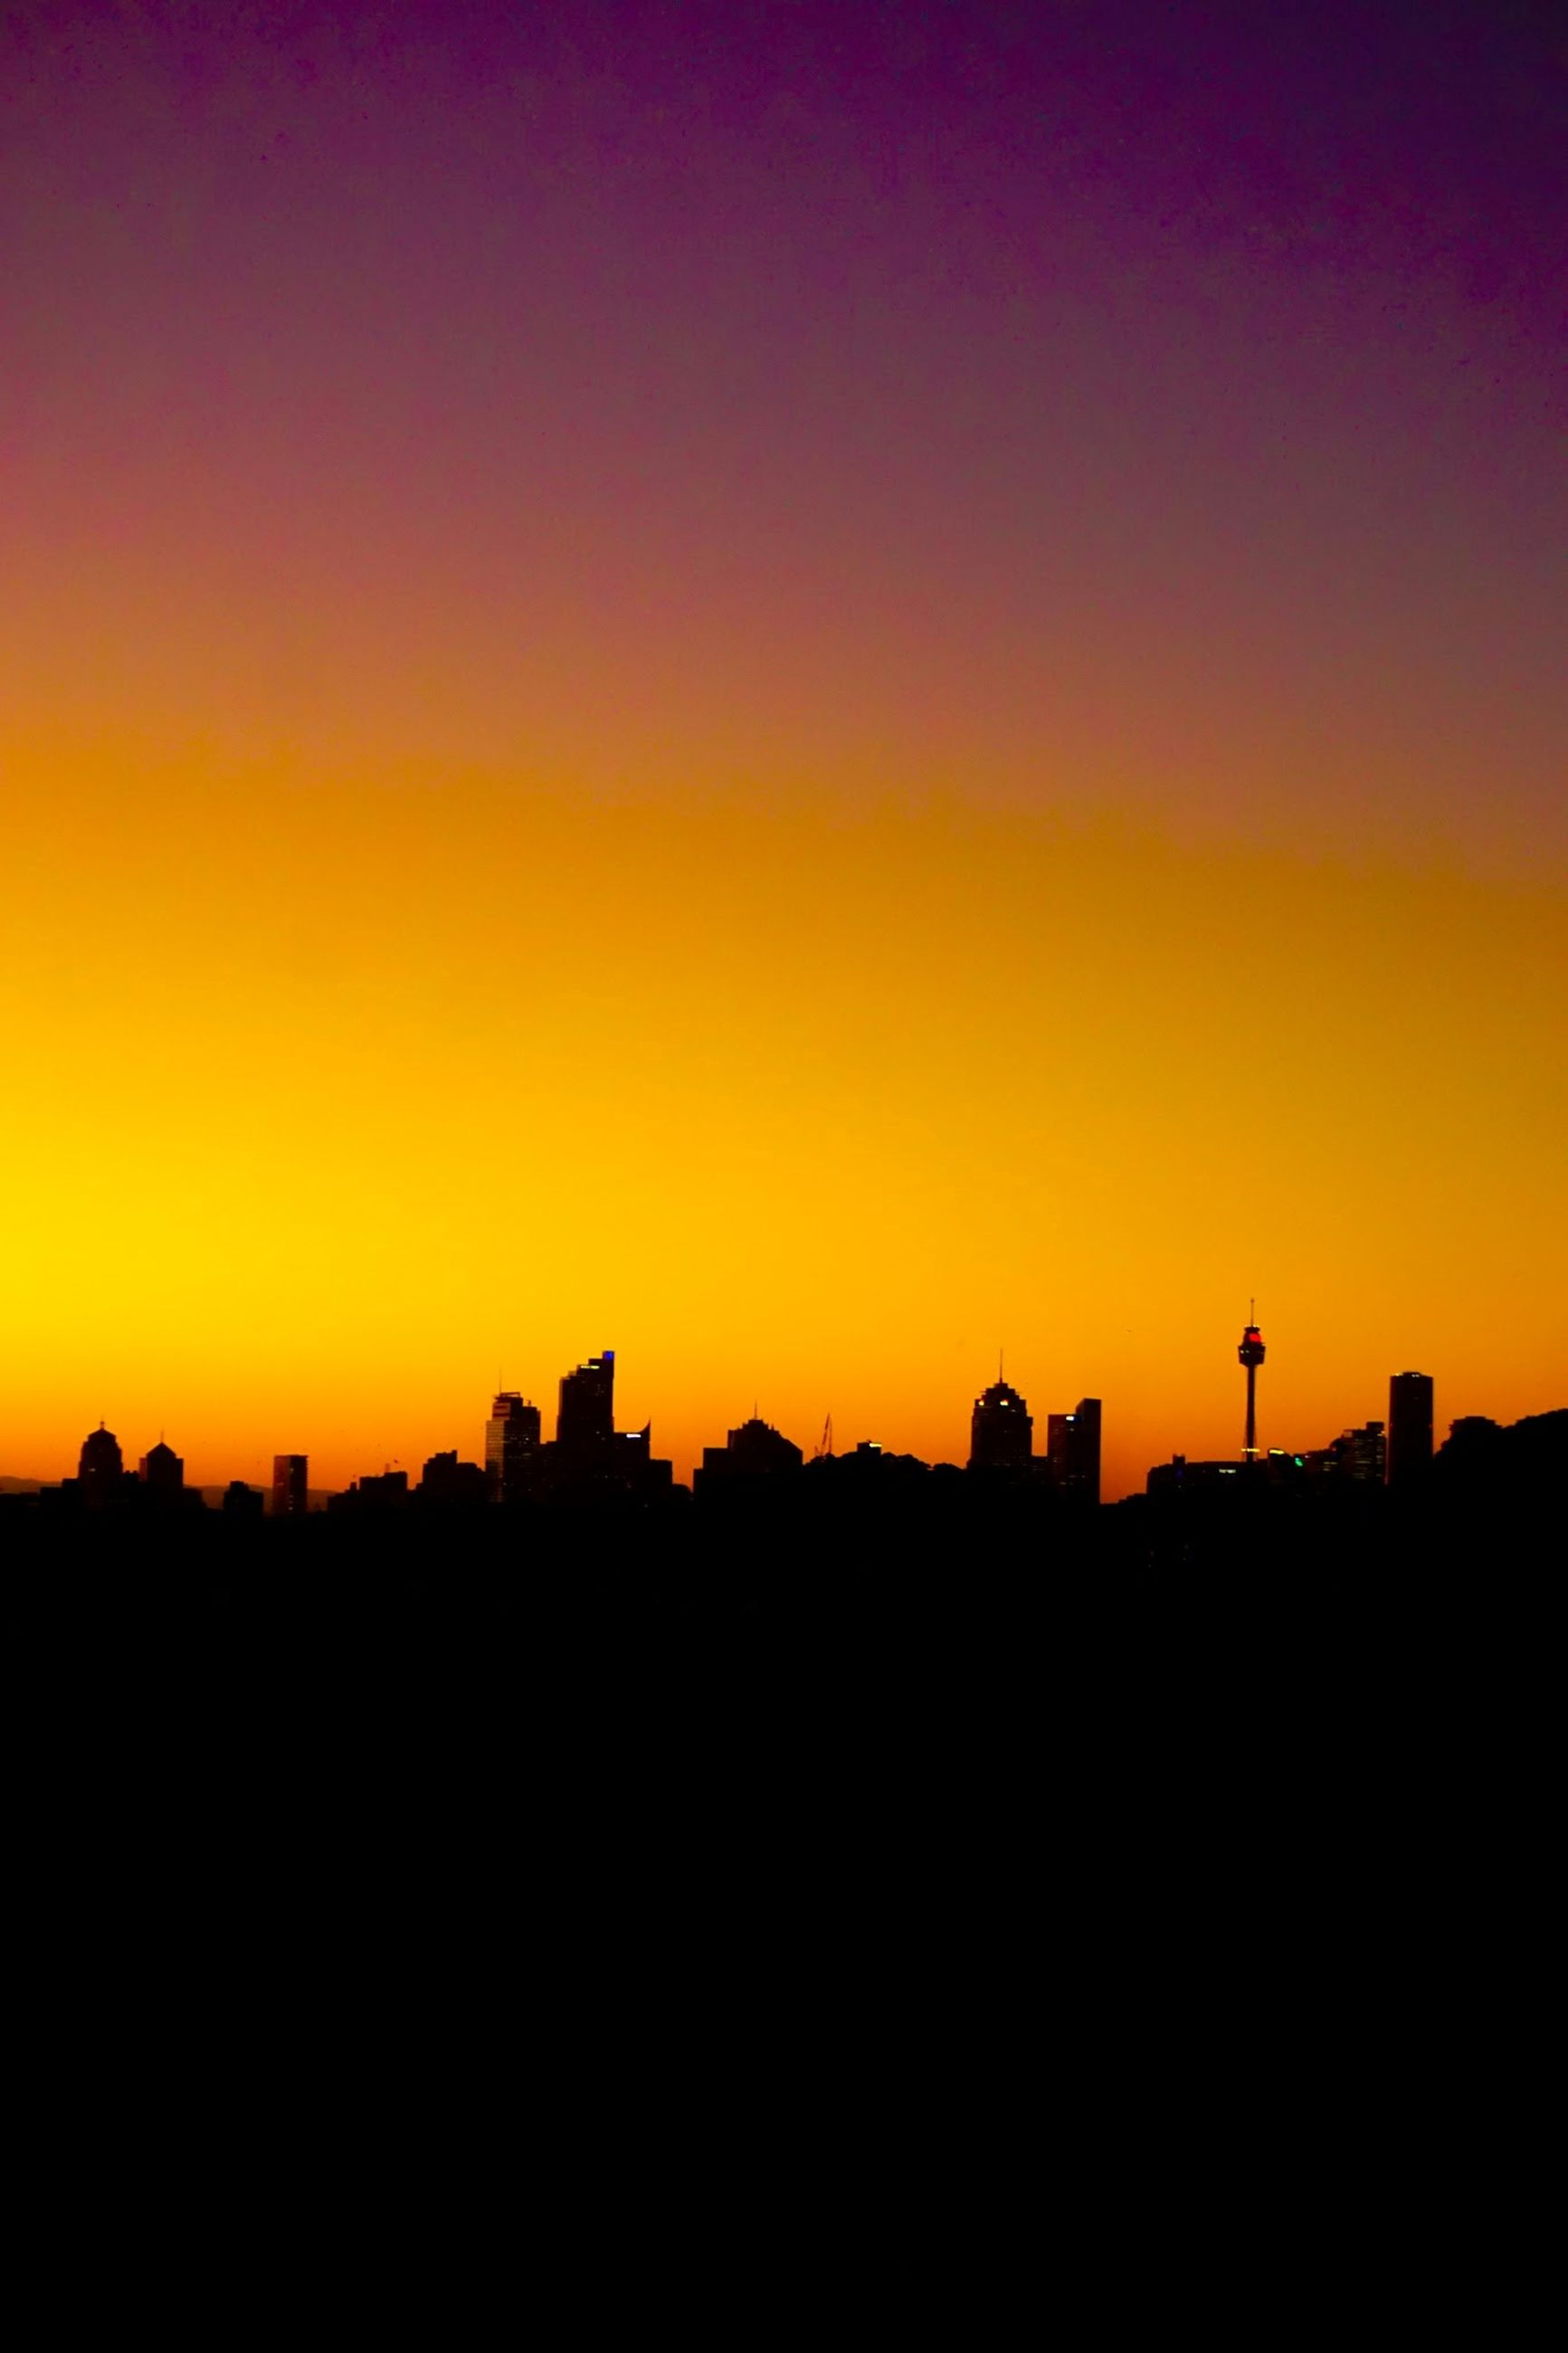 silhouette, sunset, sky, orange color, copy space, architecture, built structure, beauty in nature, no people, building exterior, scenics - nature, nature, landscape, tranquil scene, clear sky, outdoors, idyllic, tranquility, city, building, romantic sky